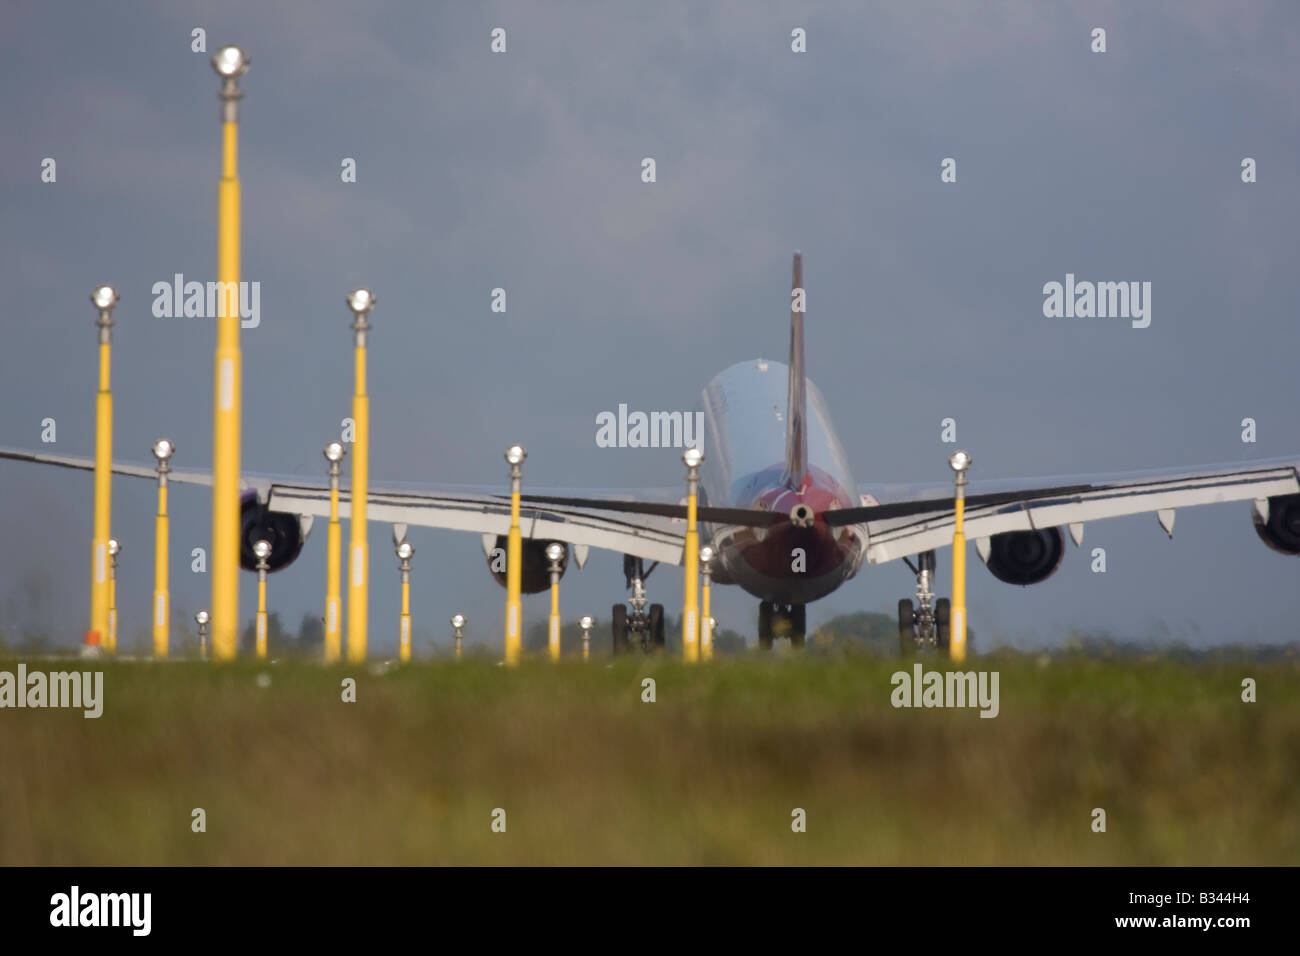 Commercial aeroplane on short final approach to London Heathrow Airport with landing lights in the foreground. - Stock Image